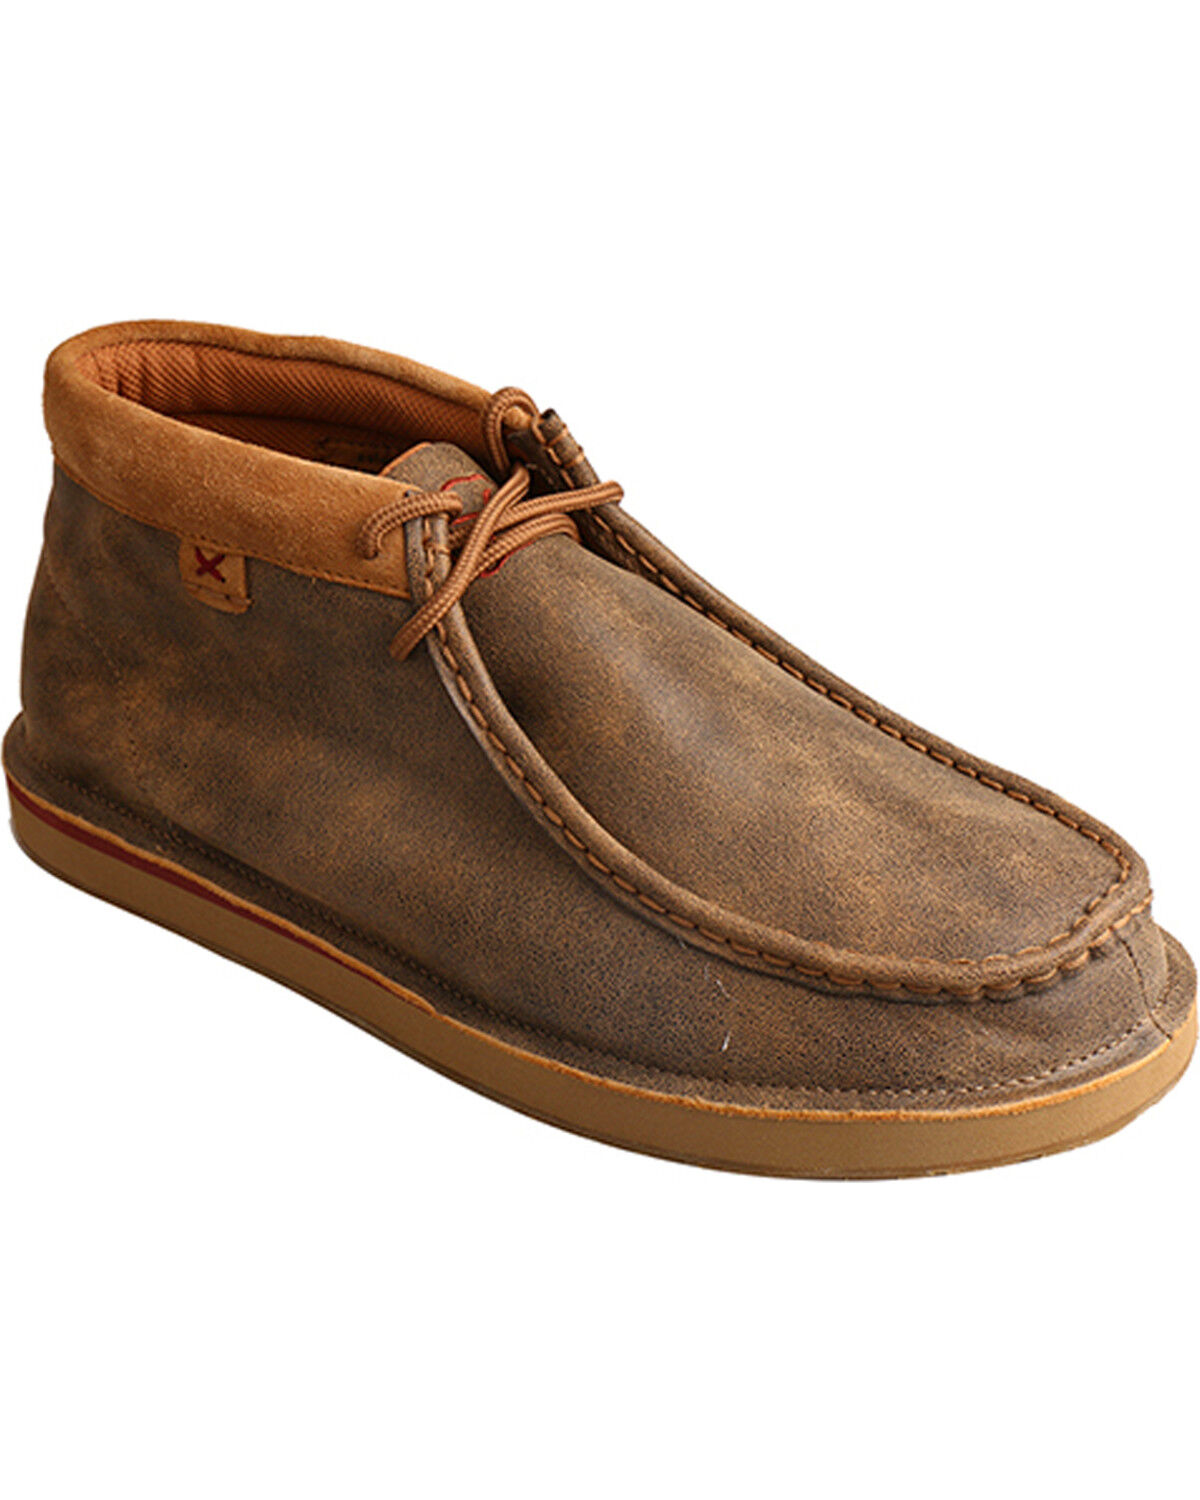 Bomber Casual Loafers - Moc Toe   Boot Barn